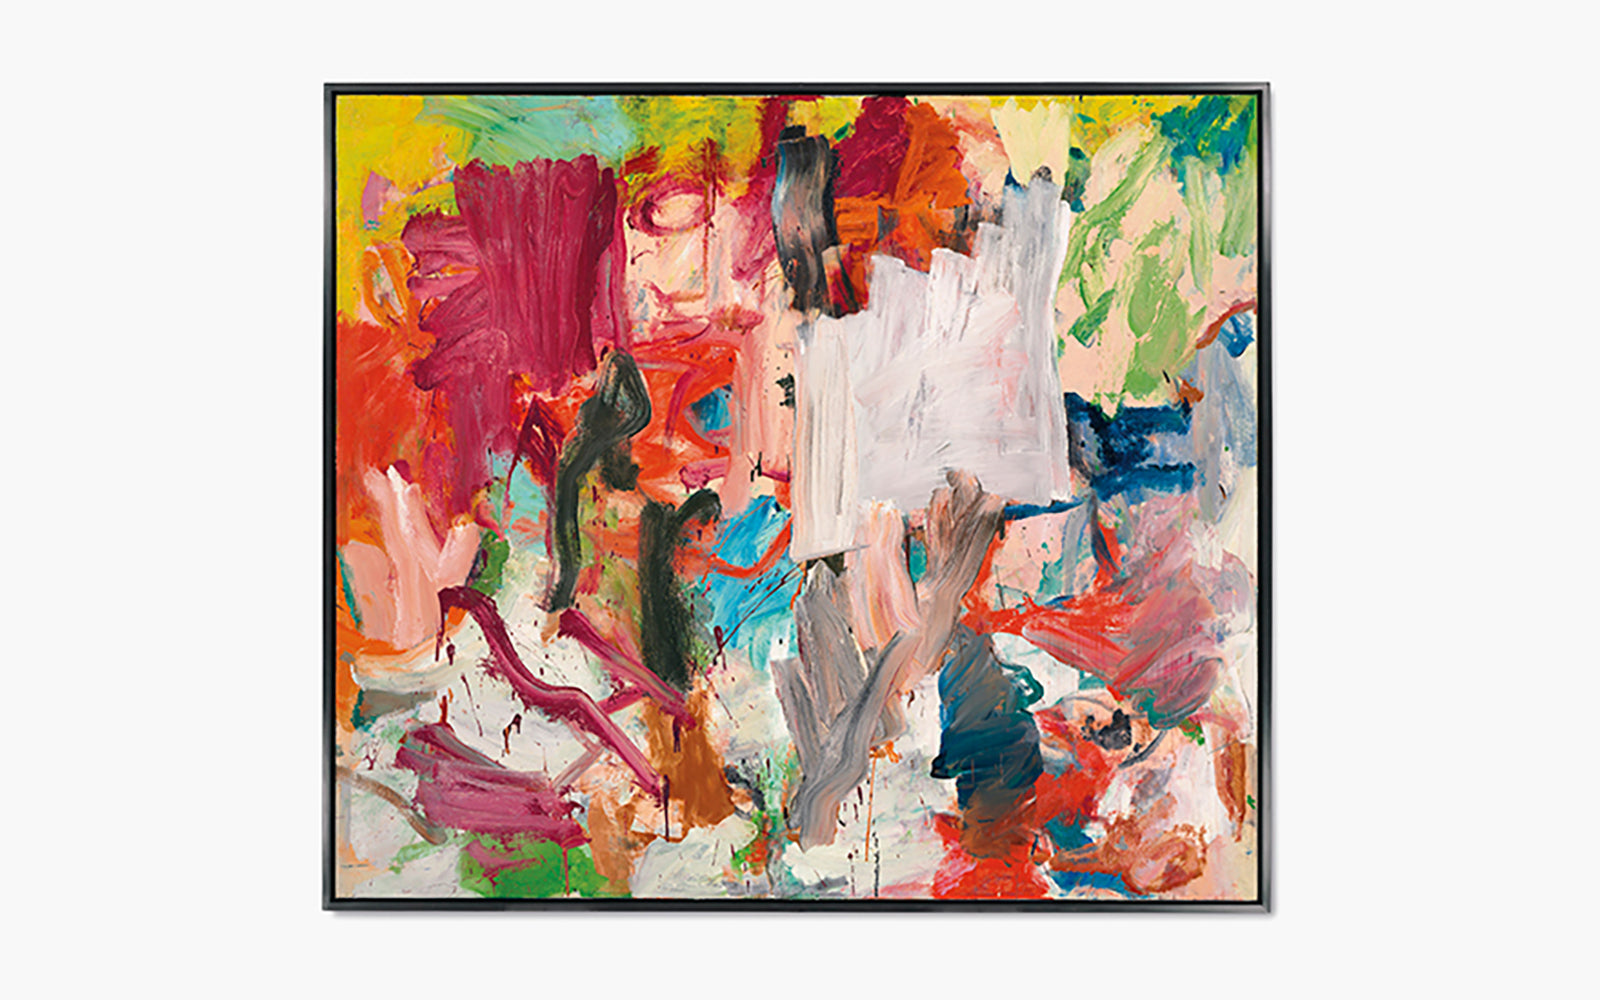 willem-de-kooning-untitled-xxv